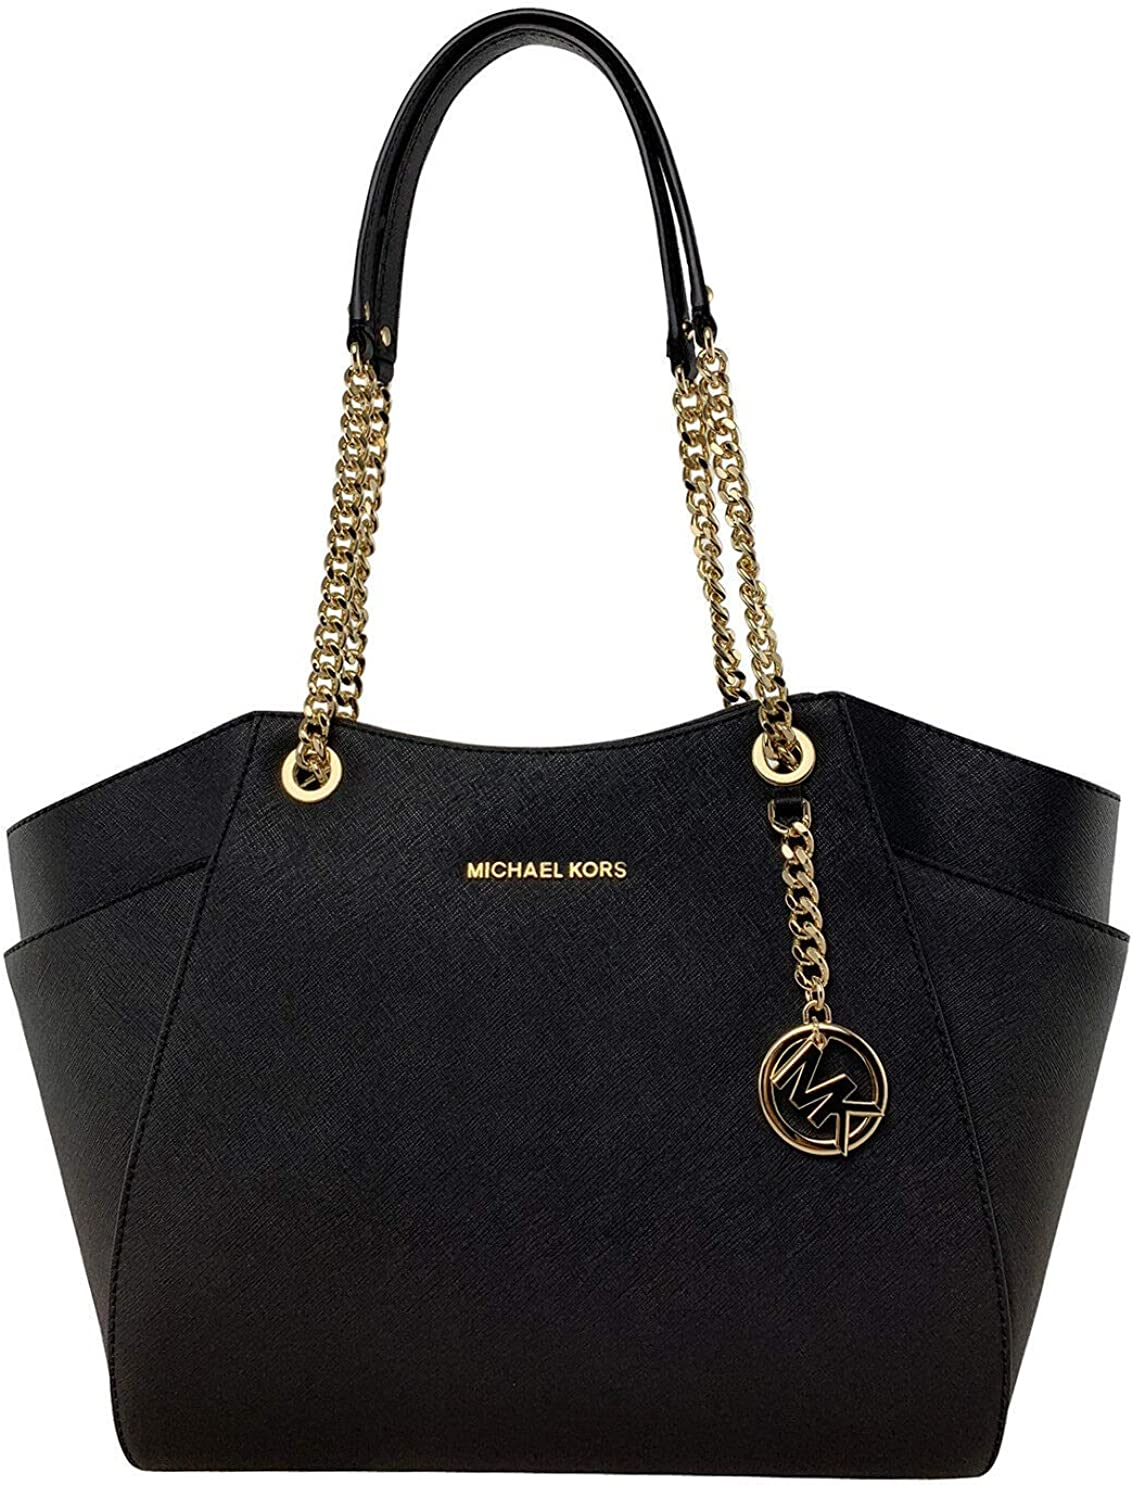 BORSA MICHAEL KORS 'NUOVA' Catena Oro Jet set travel